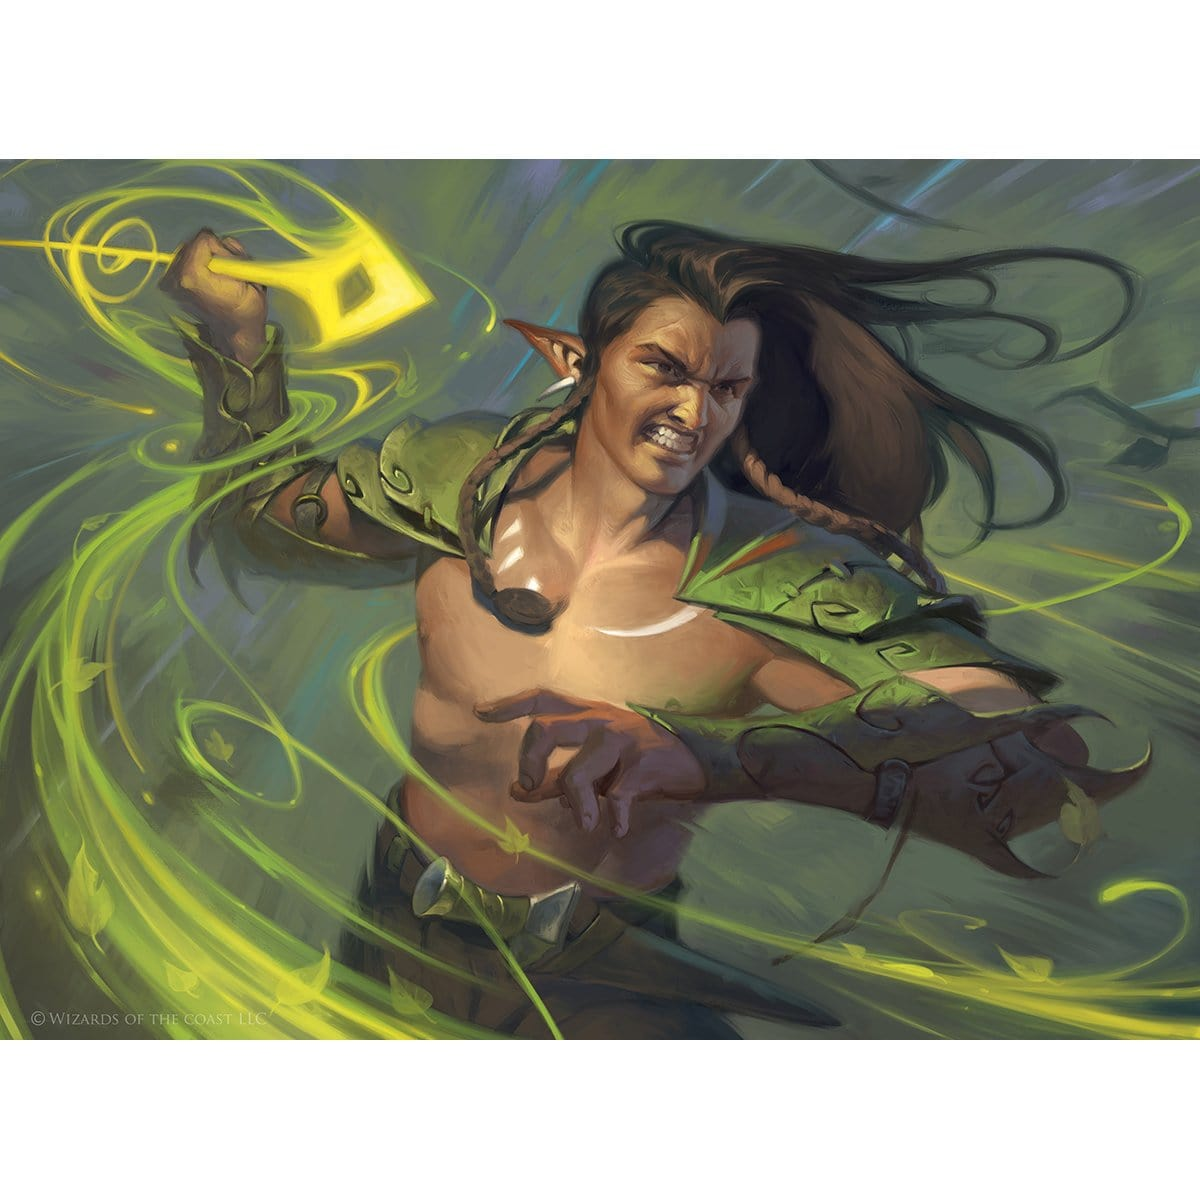 Elvish Reclaimer Print - Print - Original Magic Art - Accessories for Magic the Gathering and other card games